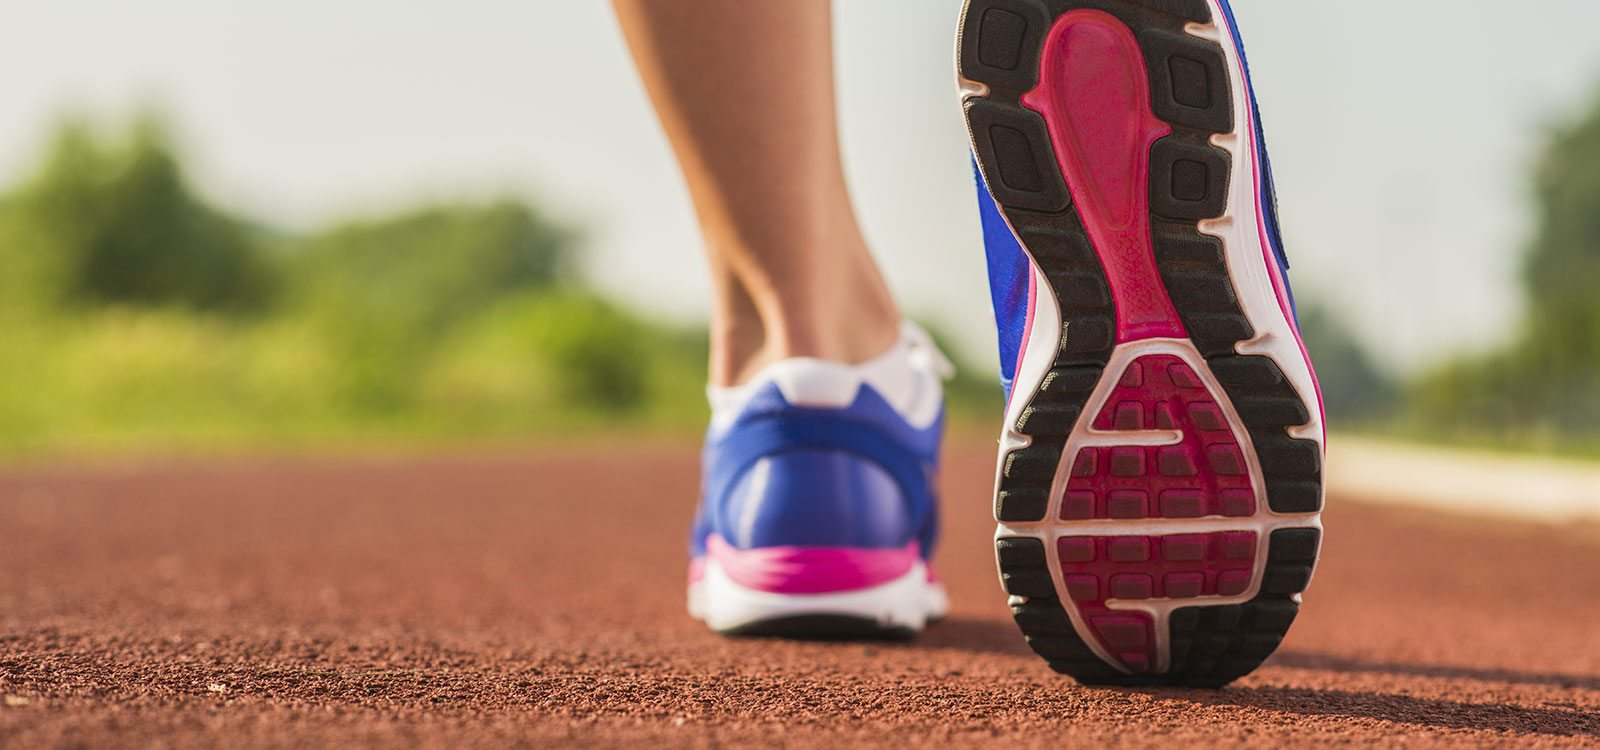 Boston Marathon | Adult Fitness | Baxter Y | YMCA of Greater Indianapolis